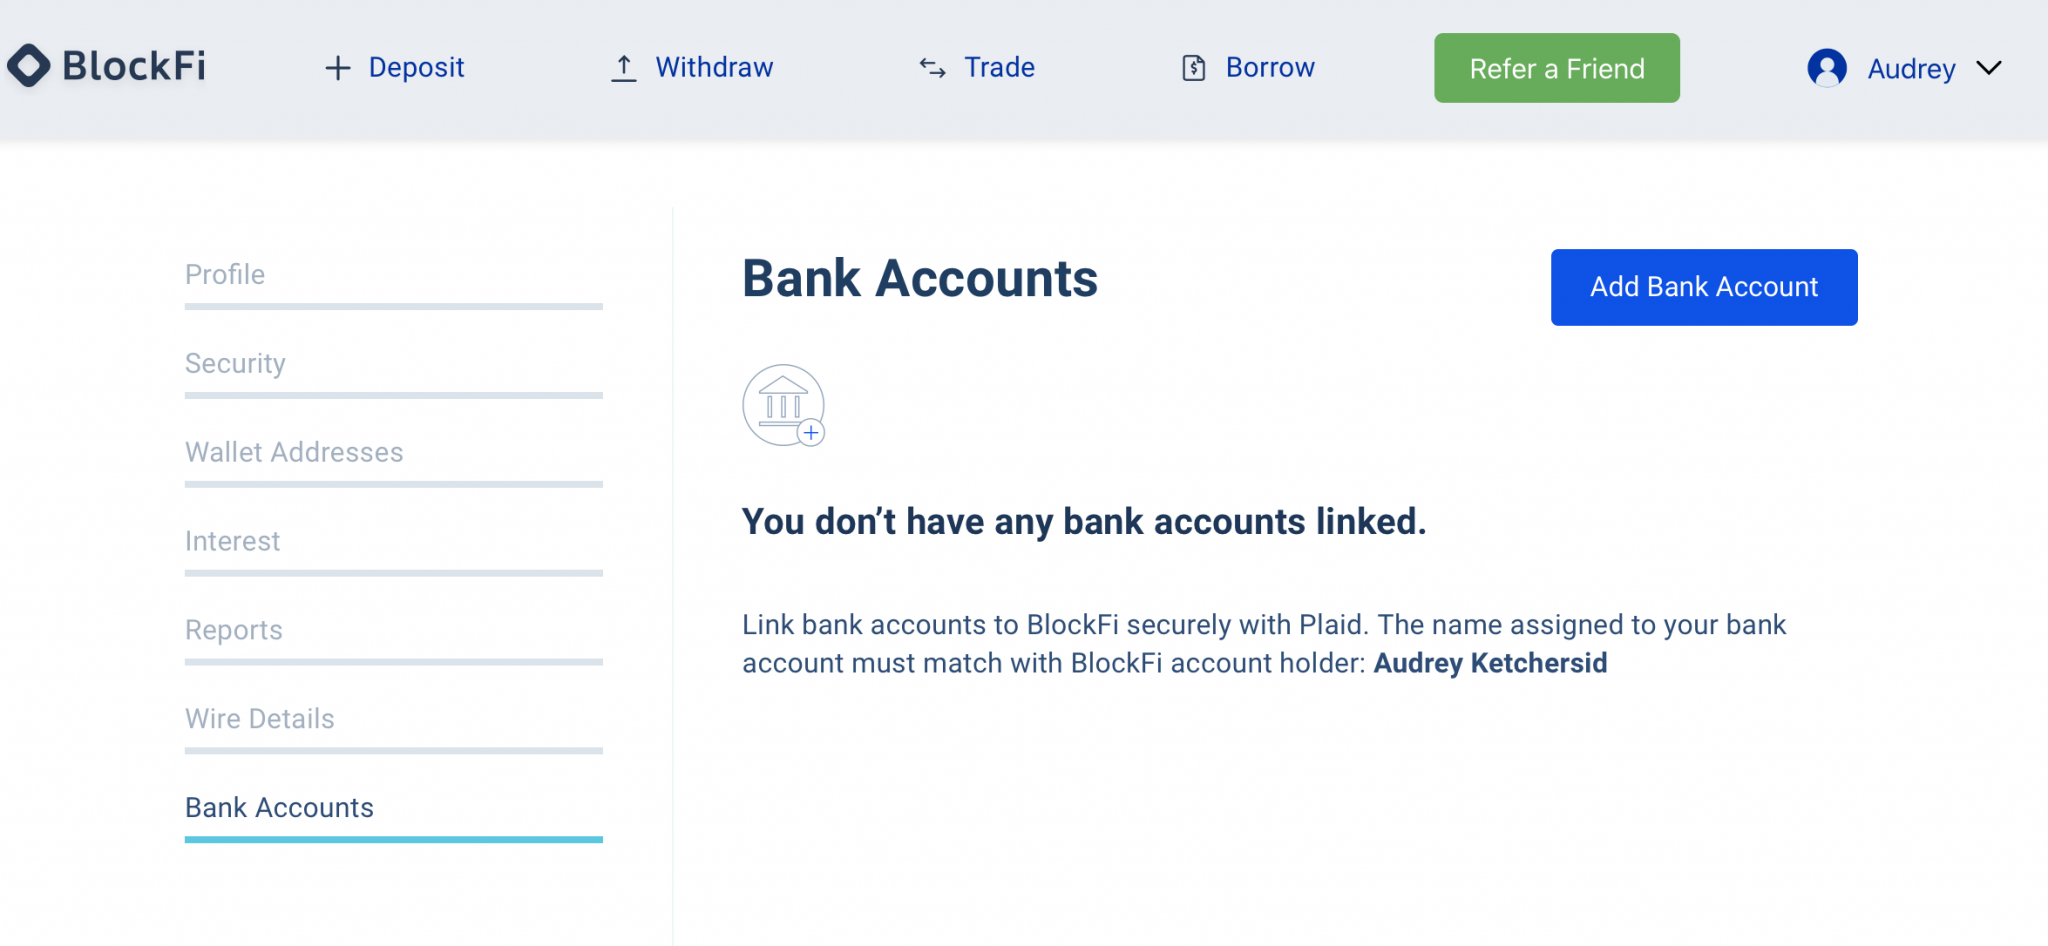 BlockFi ACH Bank Account